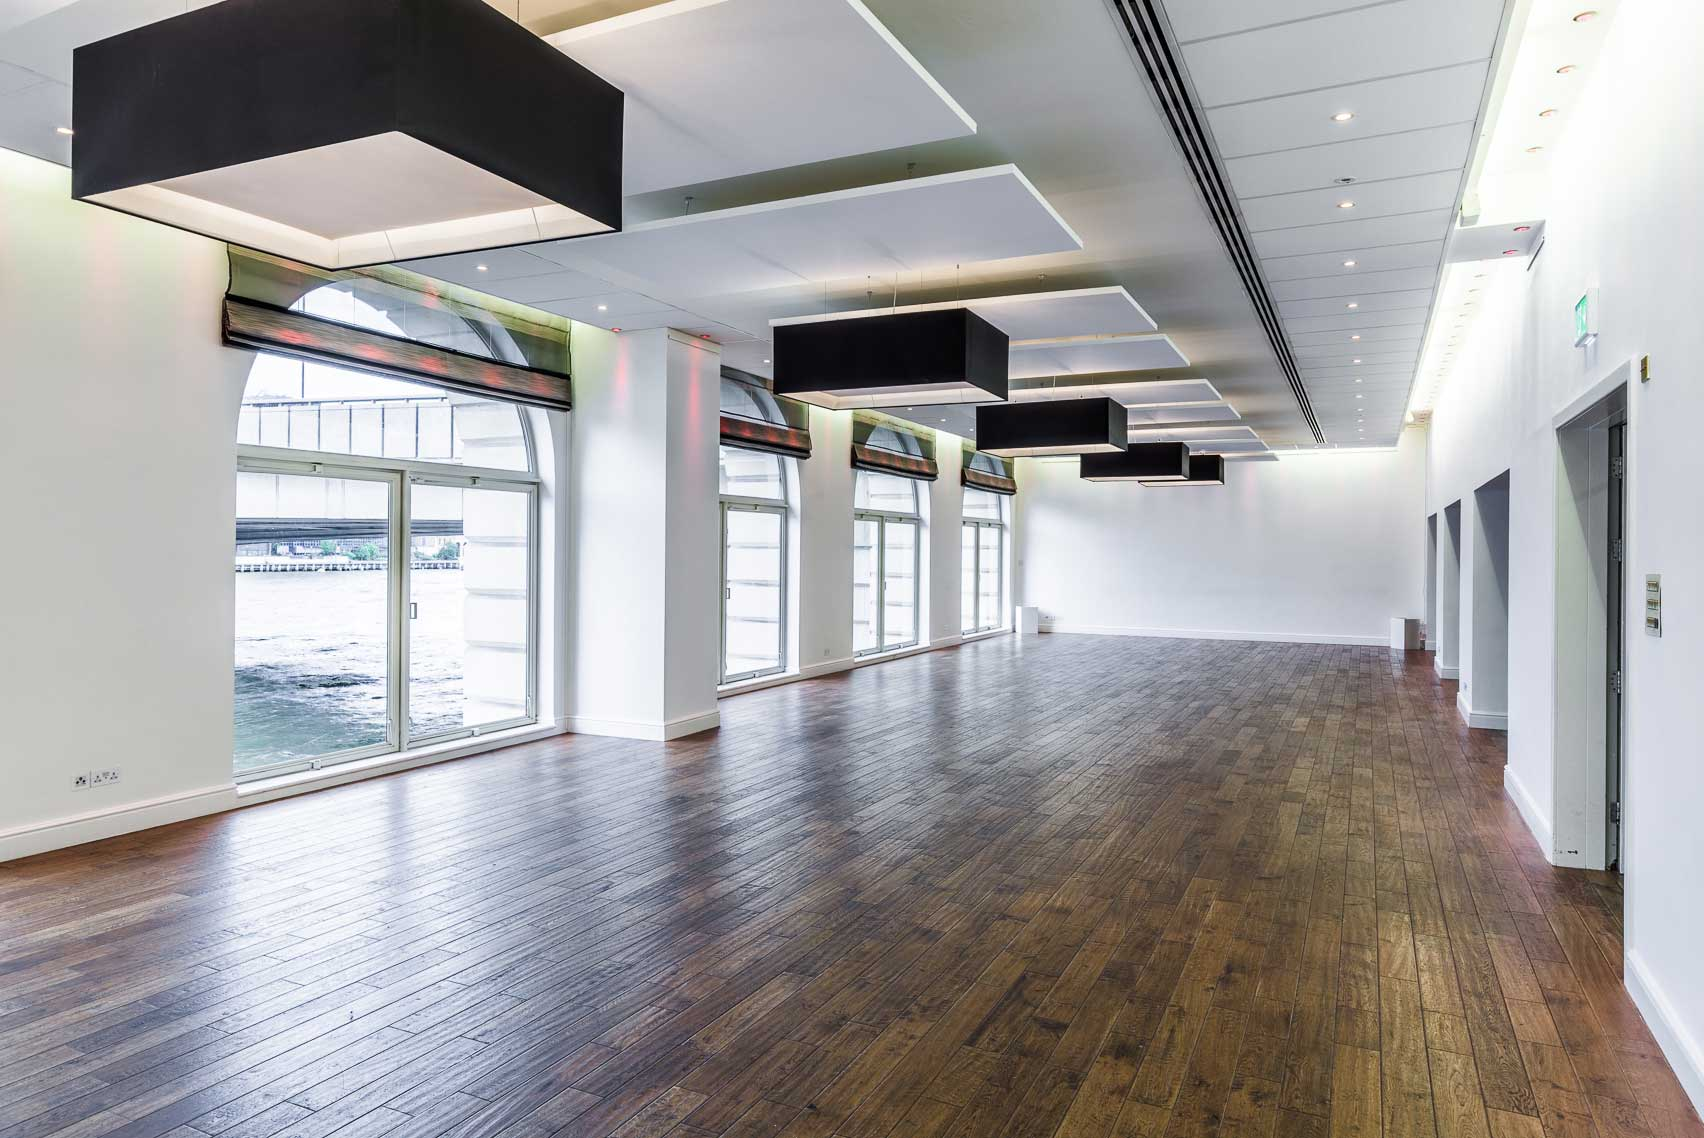 River rooms event space panaromic views at glaziers hall for 1234 get on the dance floor free mp3 download